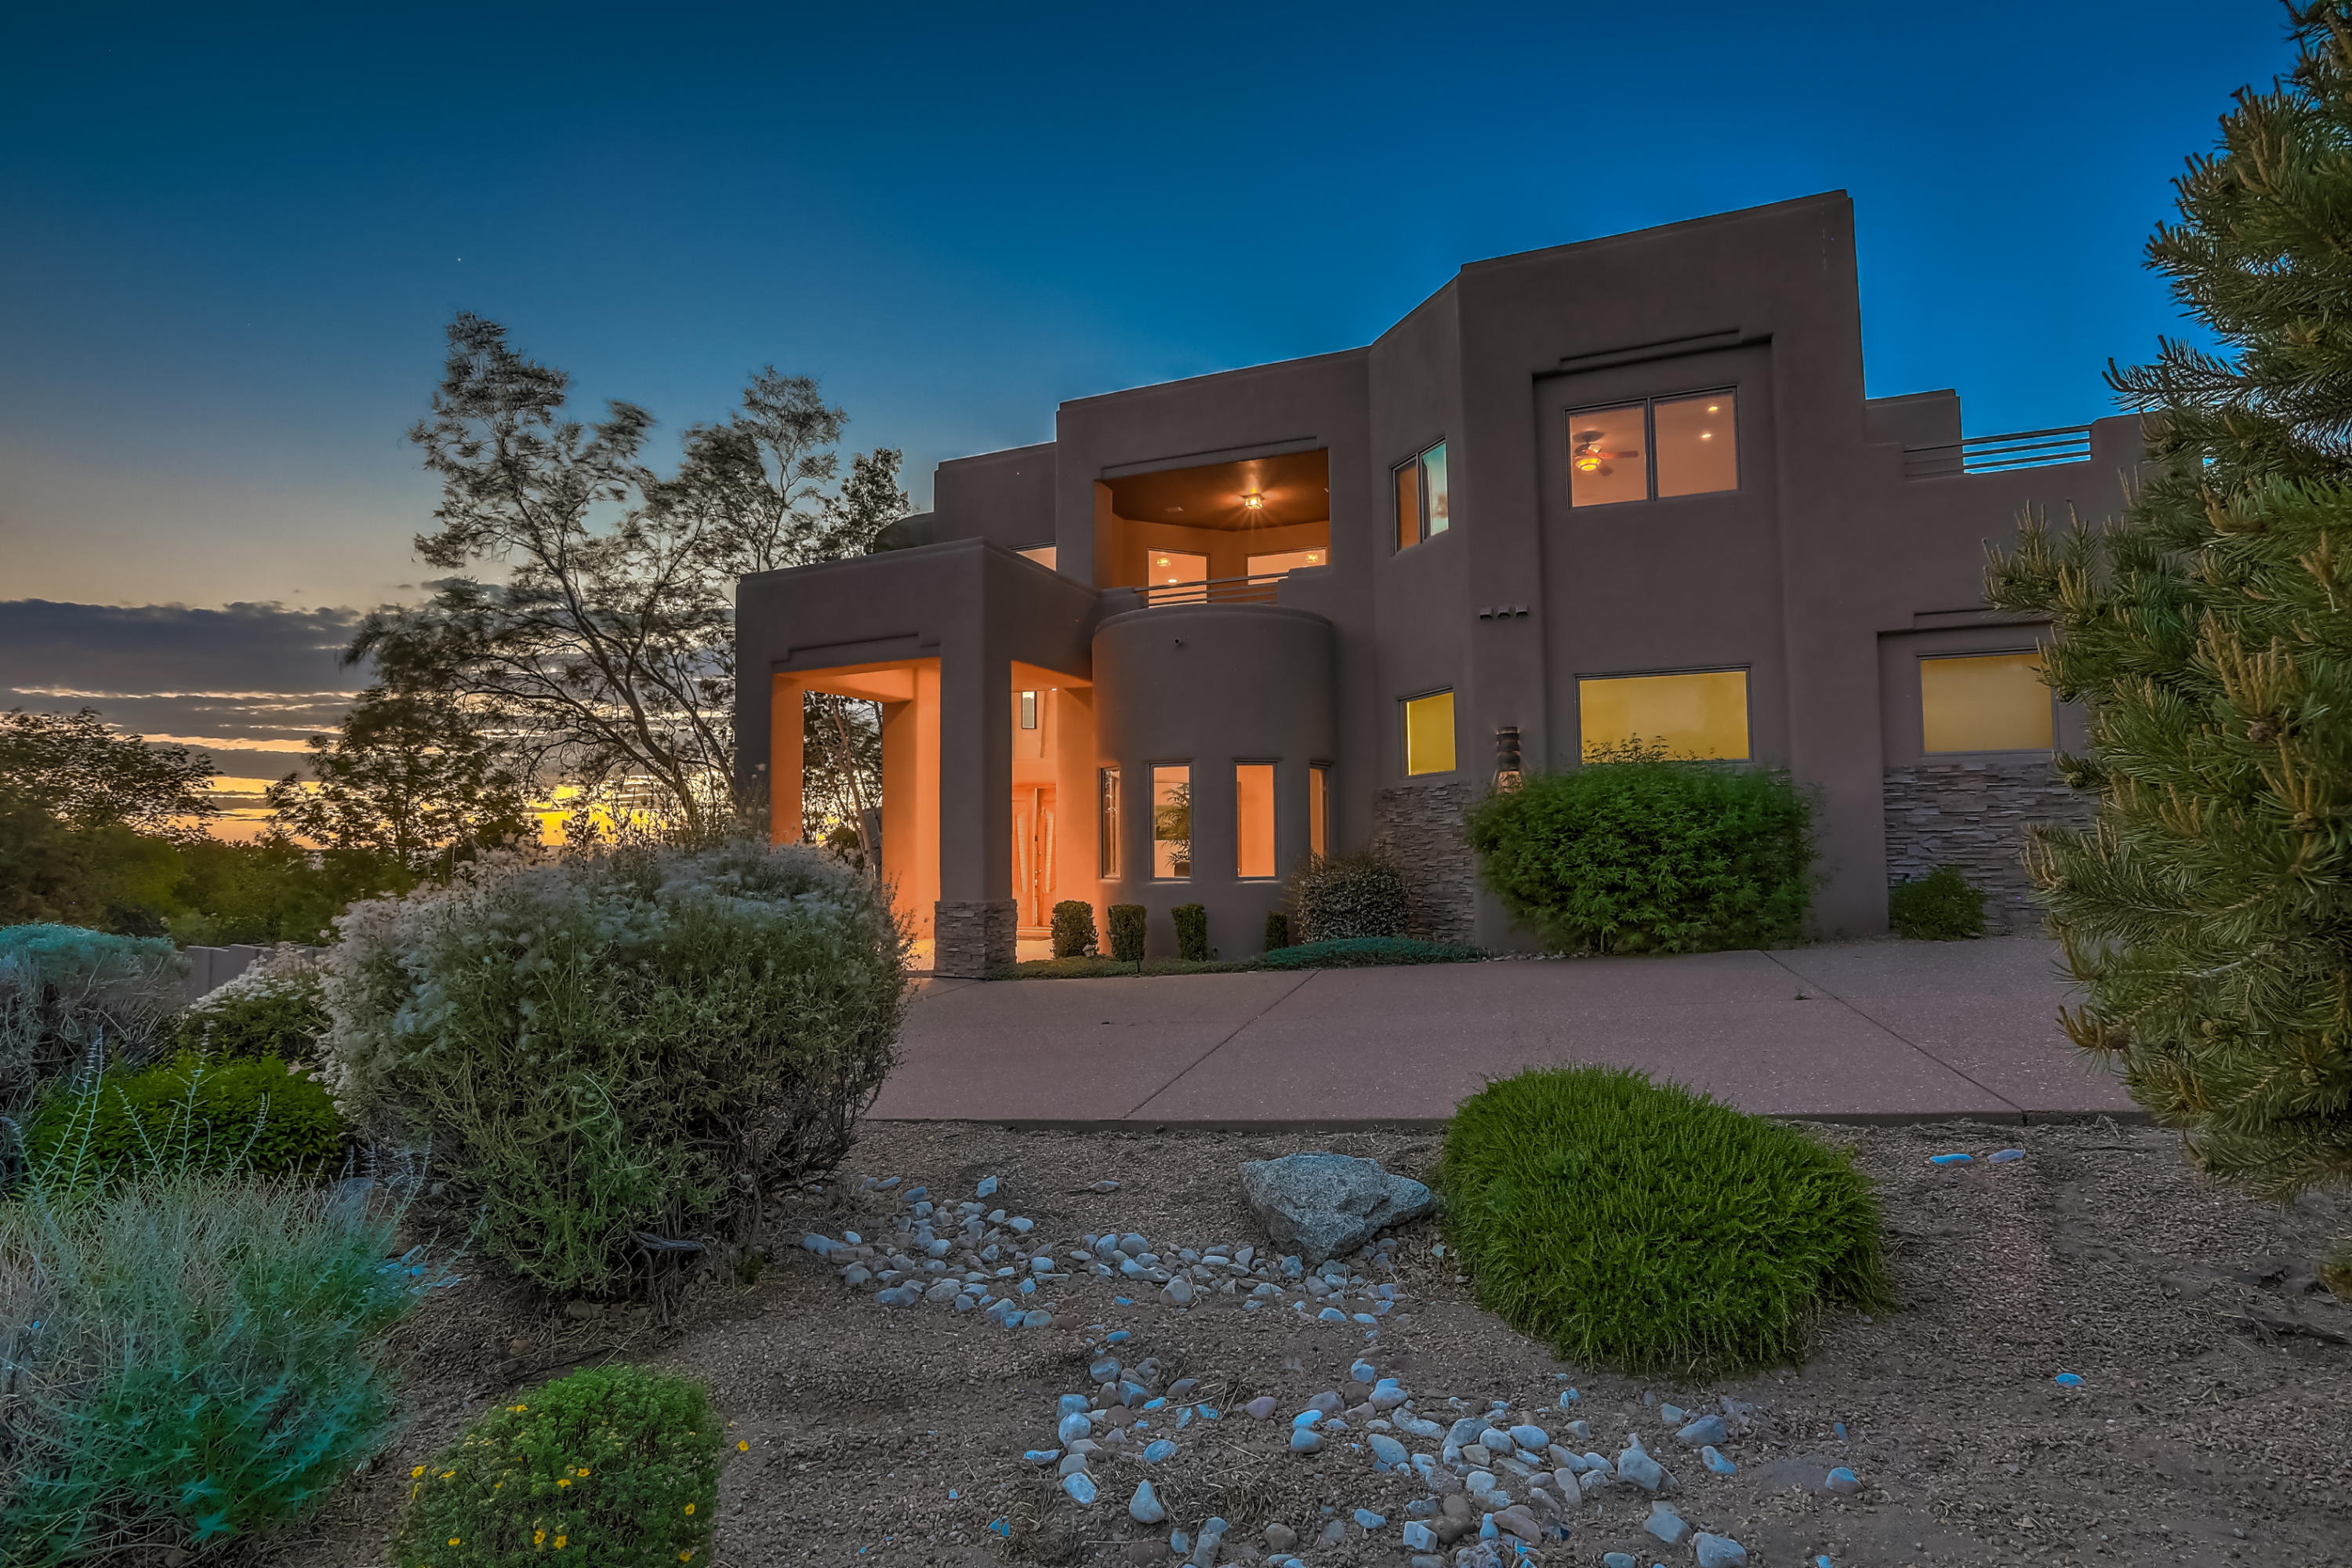 39 SANDIA HEIGHTS DRIVE NE, ALBUQUERQUE, NM 87122